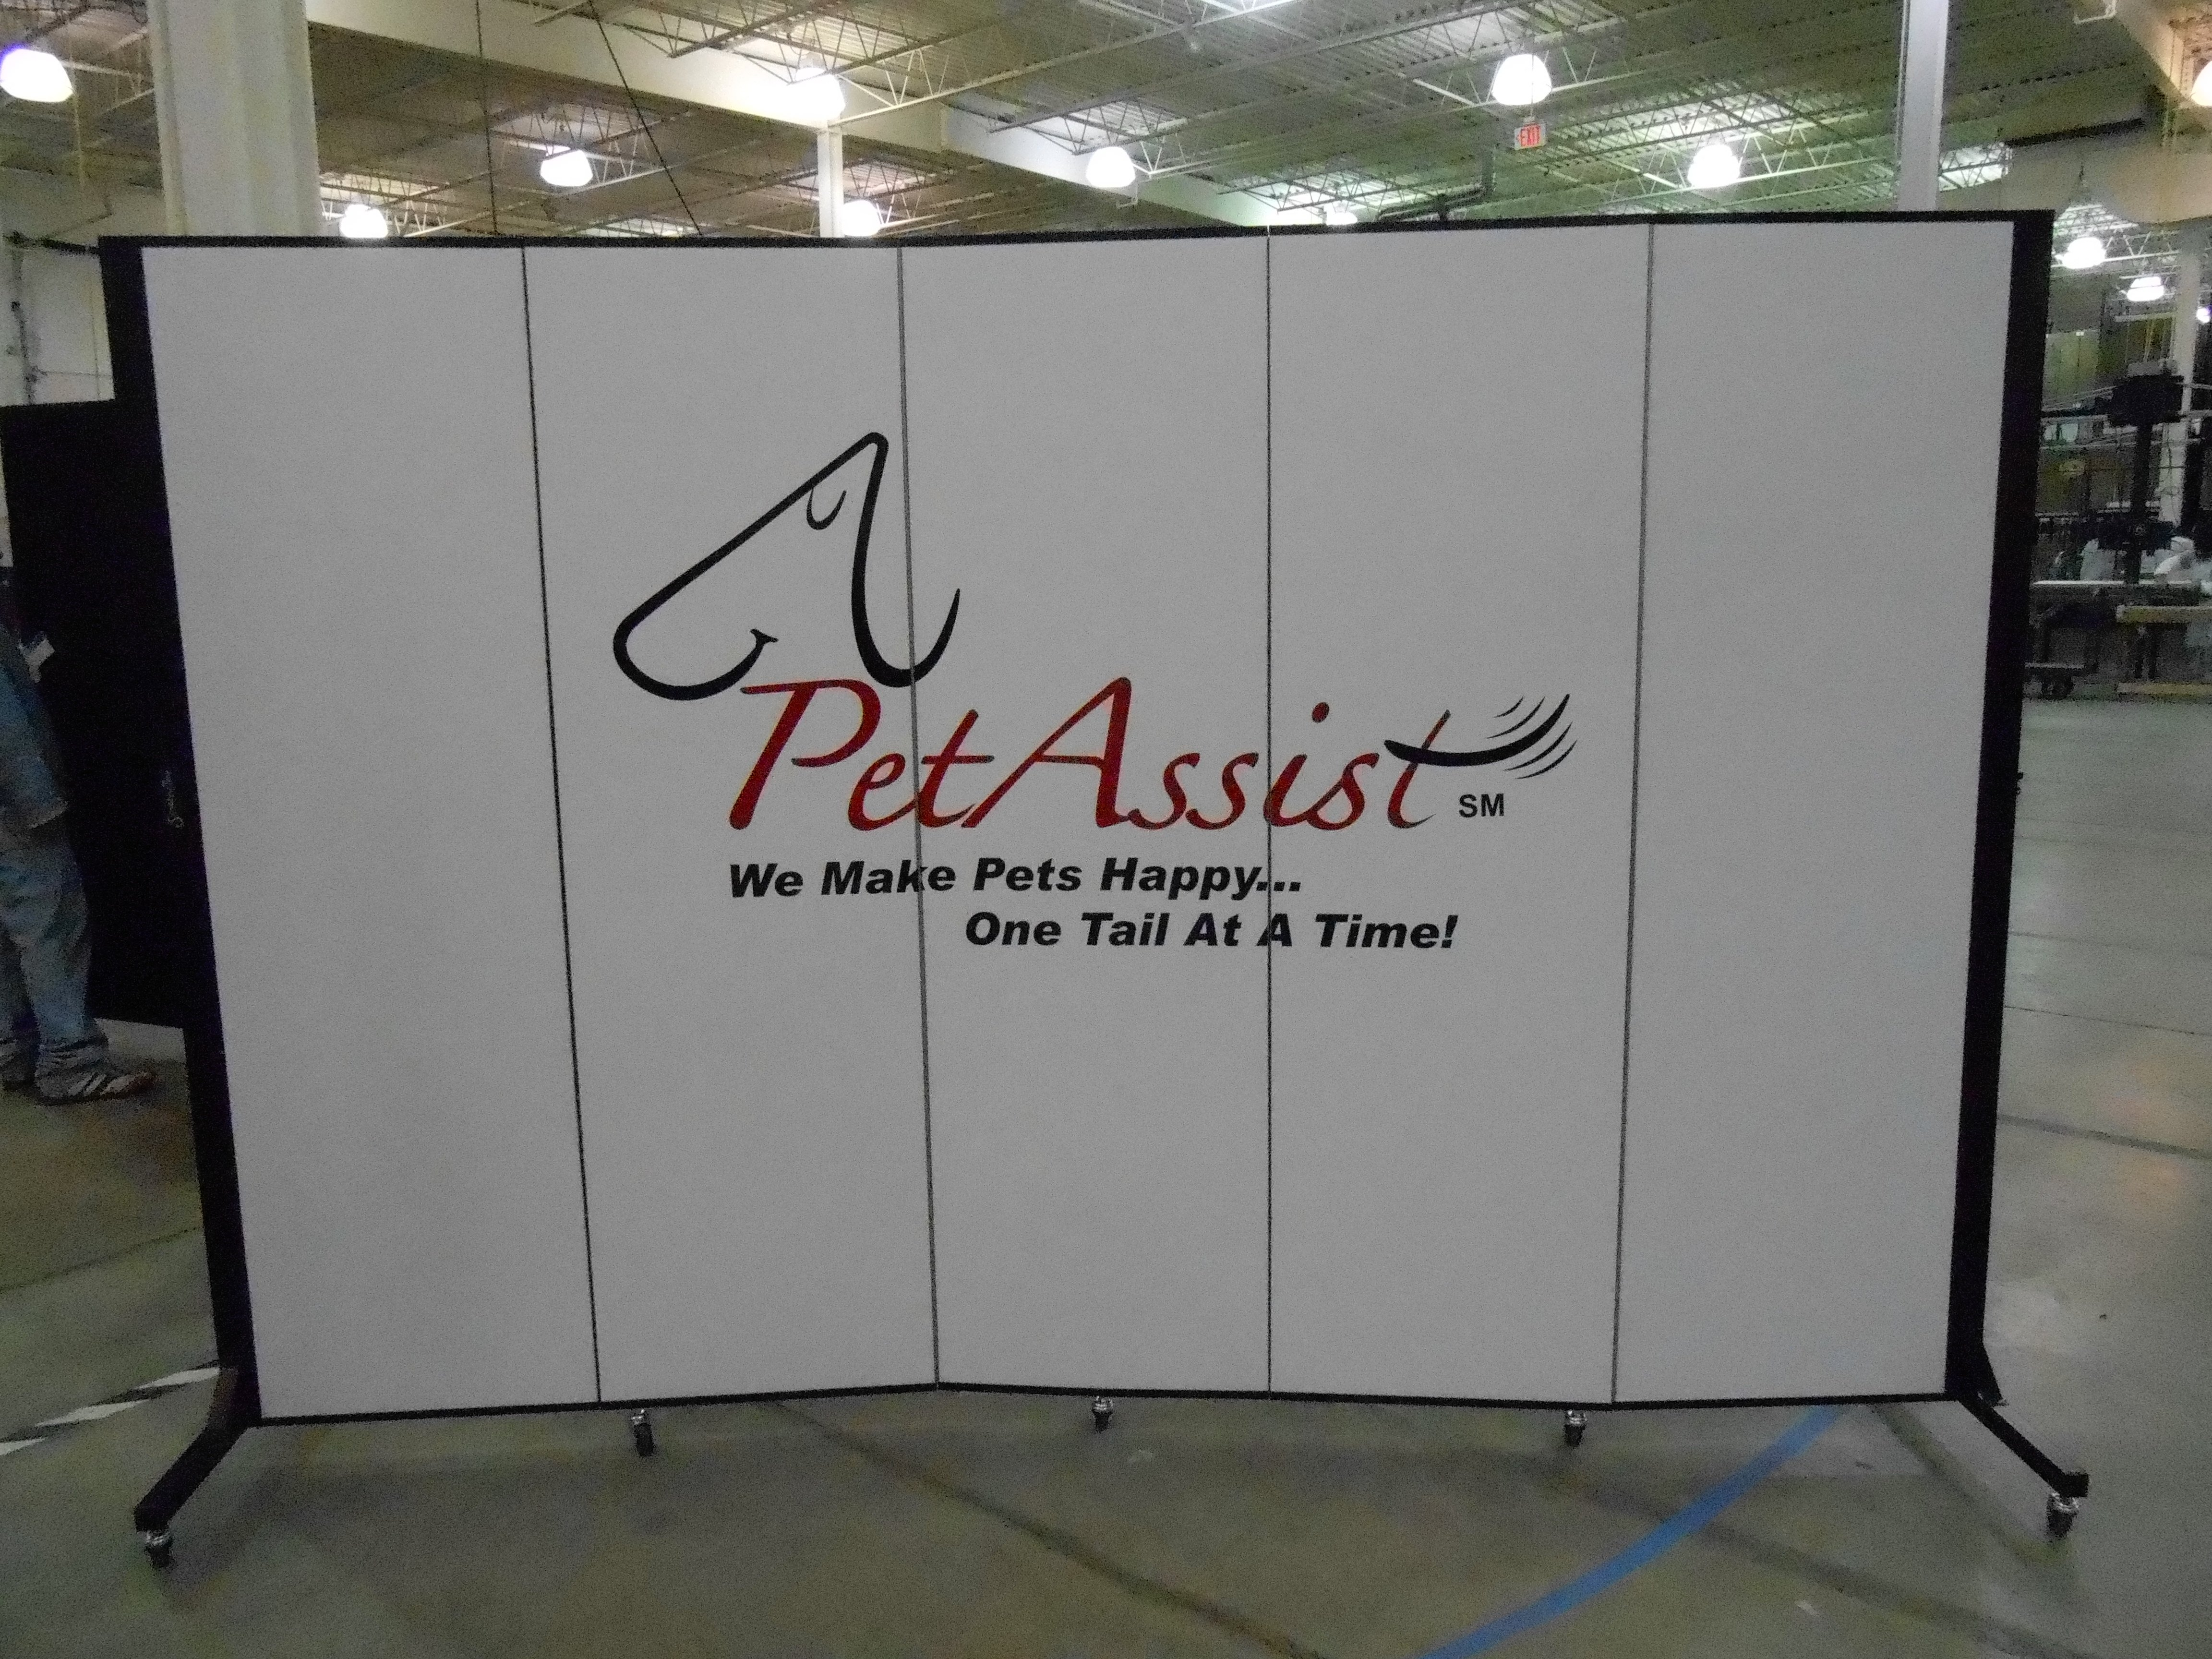 Pet Assist We Make Pets Happy One Tail At A